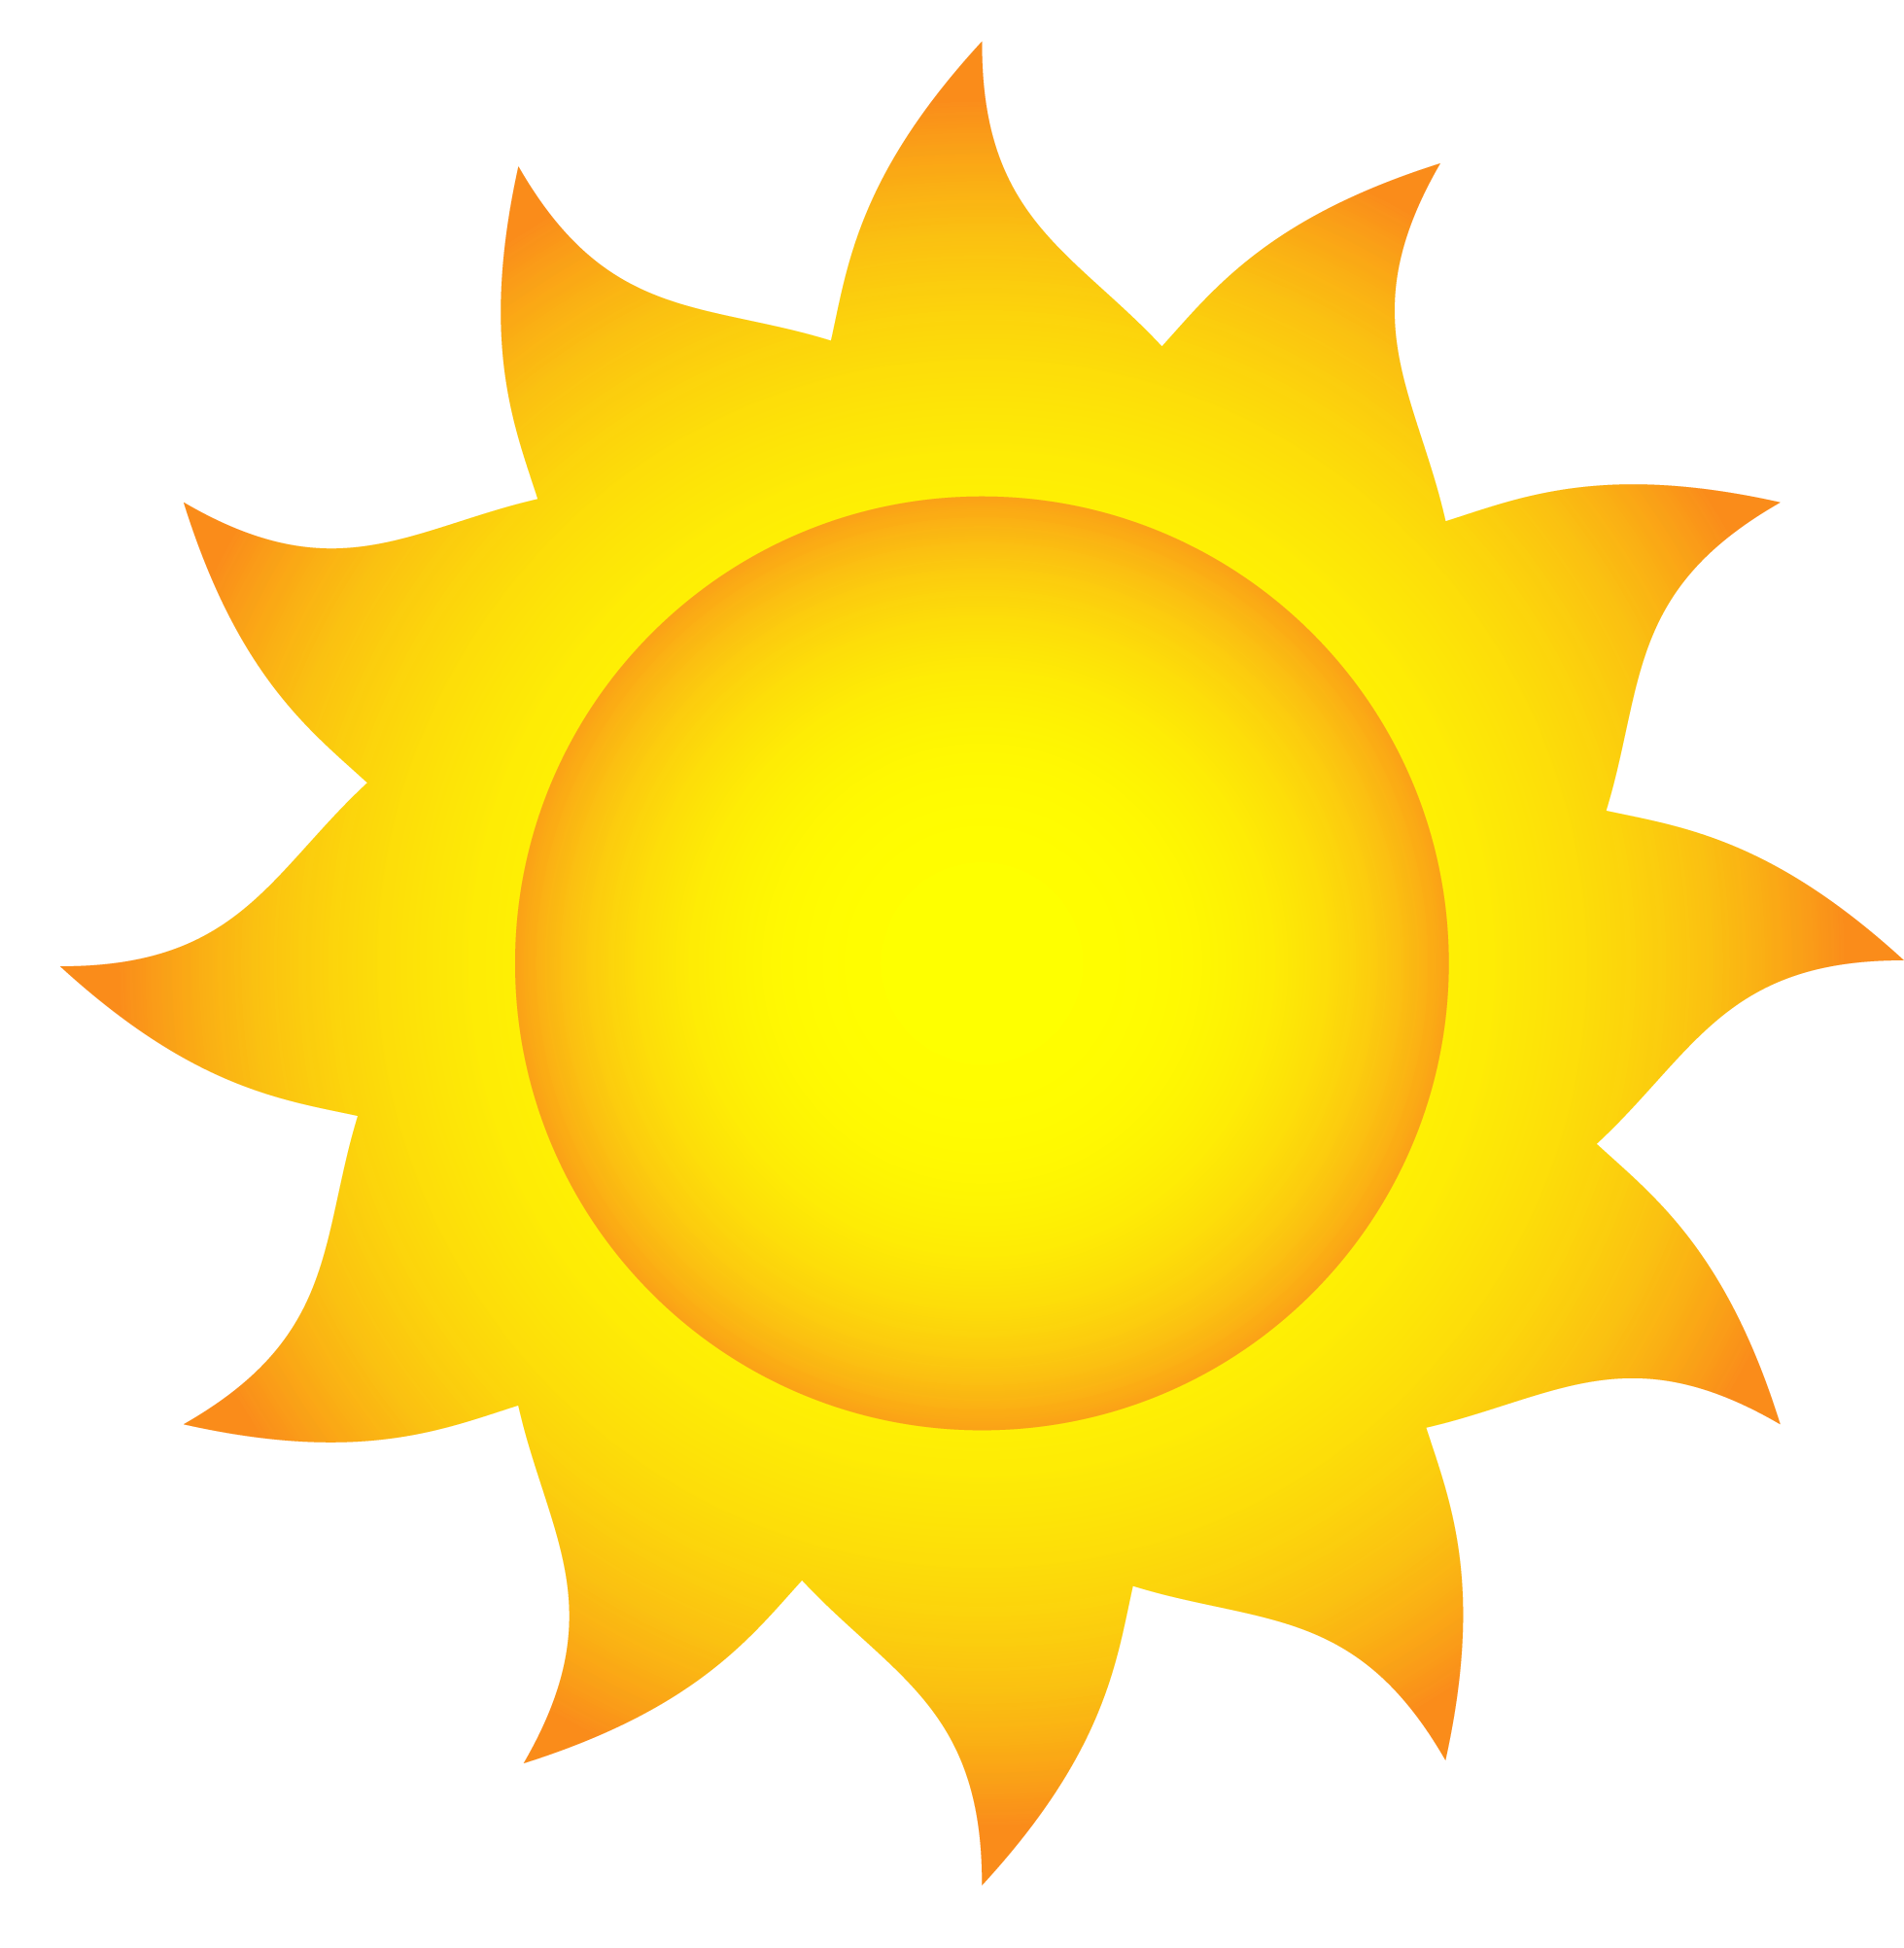 Sun clipart no background image stock Happy Sun Clipart at GetDrawings.com | Free for personal use Happy ... image stock